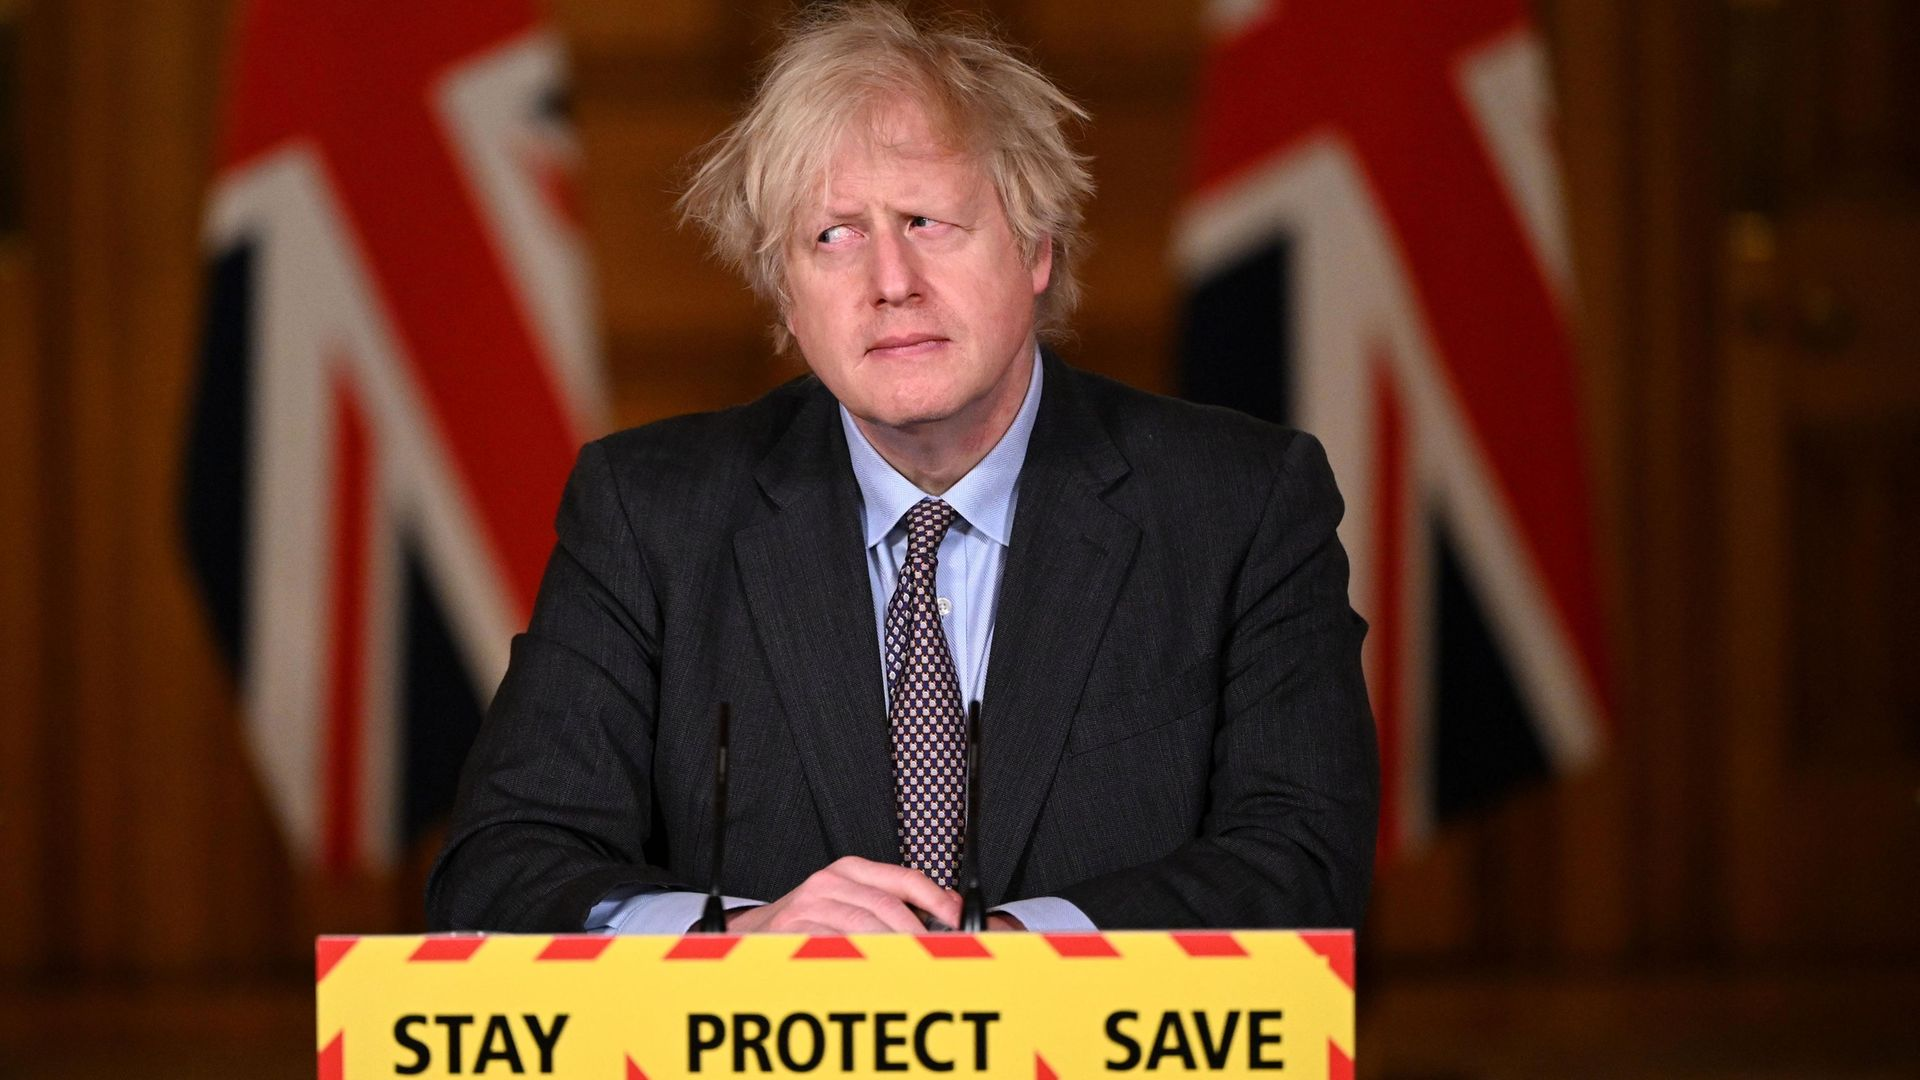 Prime Minister Boris Johnson at a Number 10 press conference - Credit: POOL/AFP via Getty Images